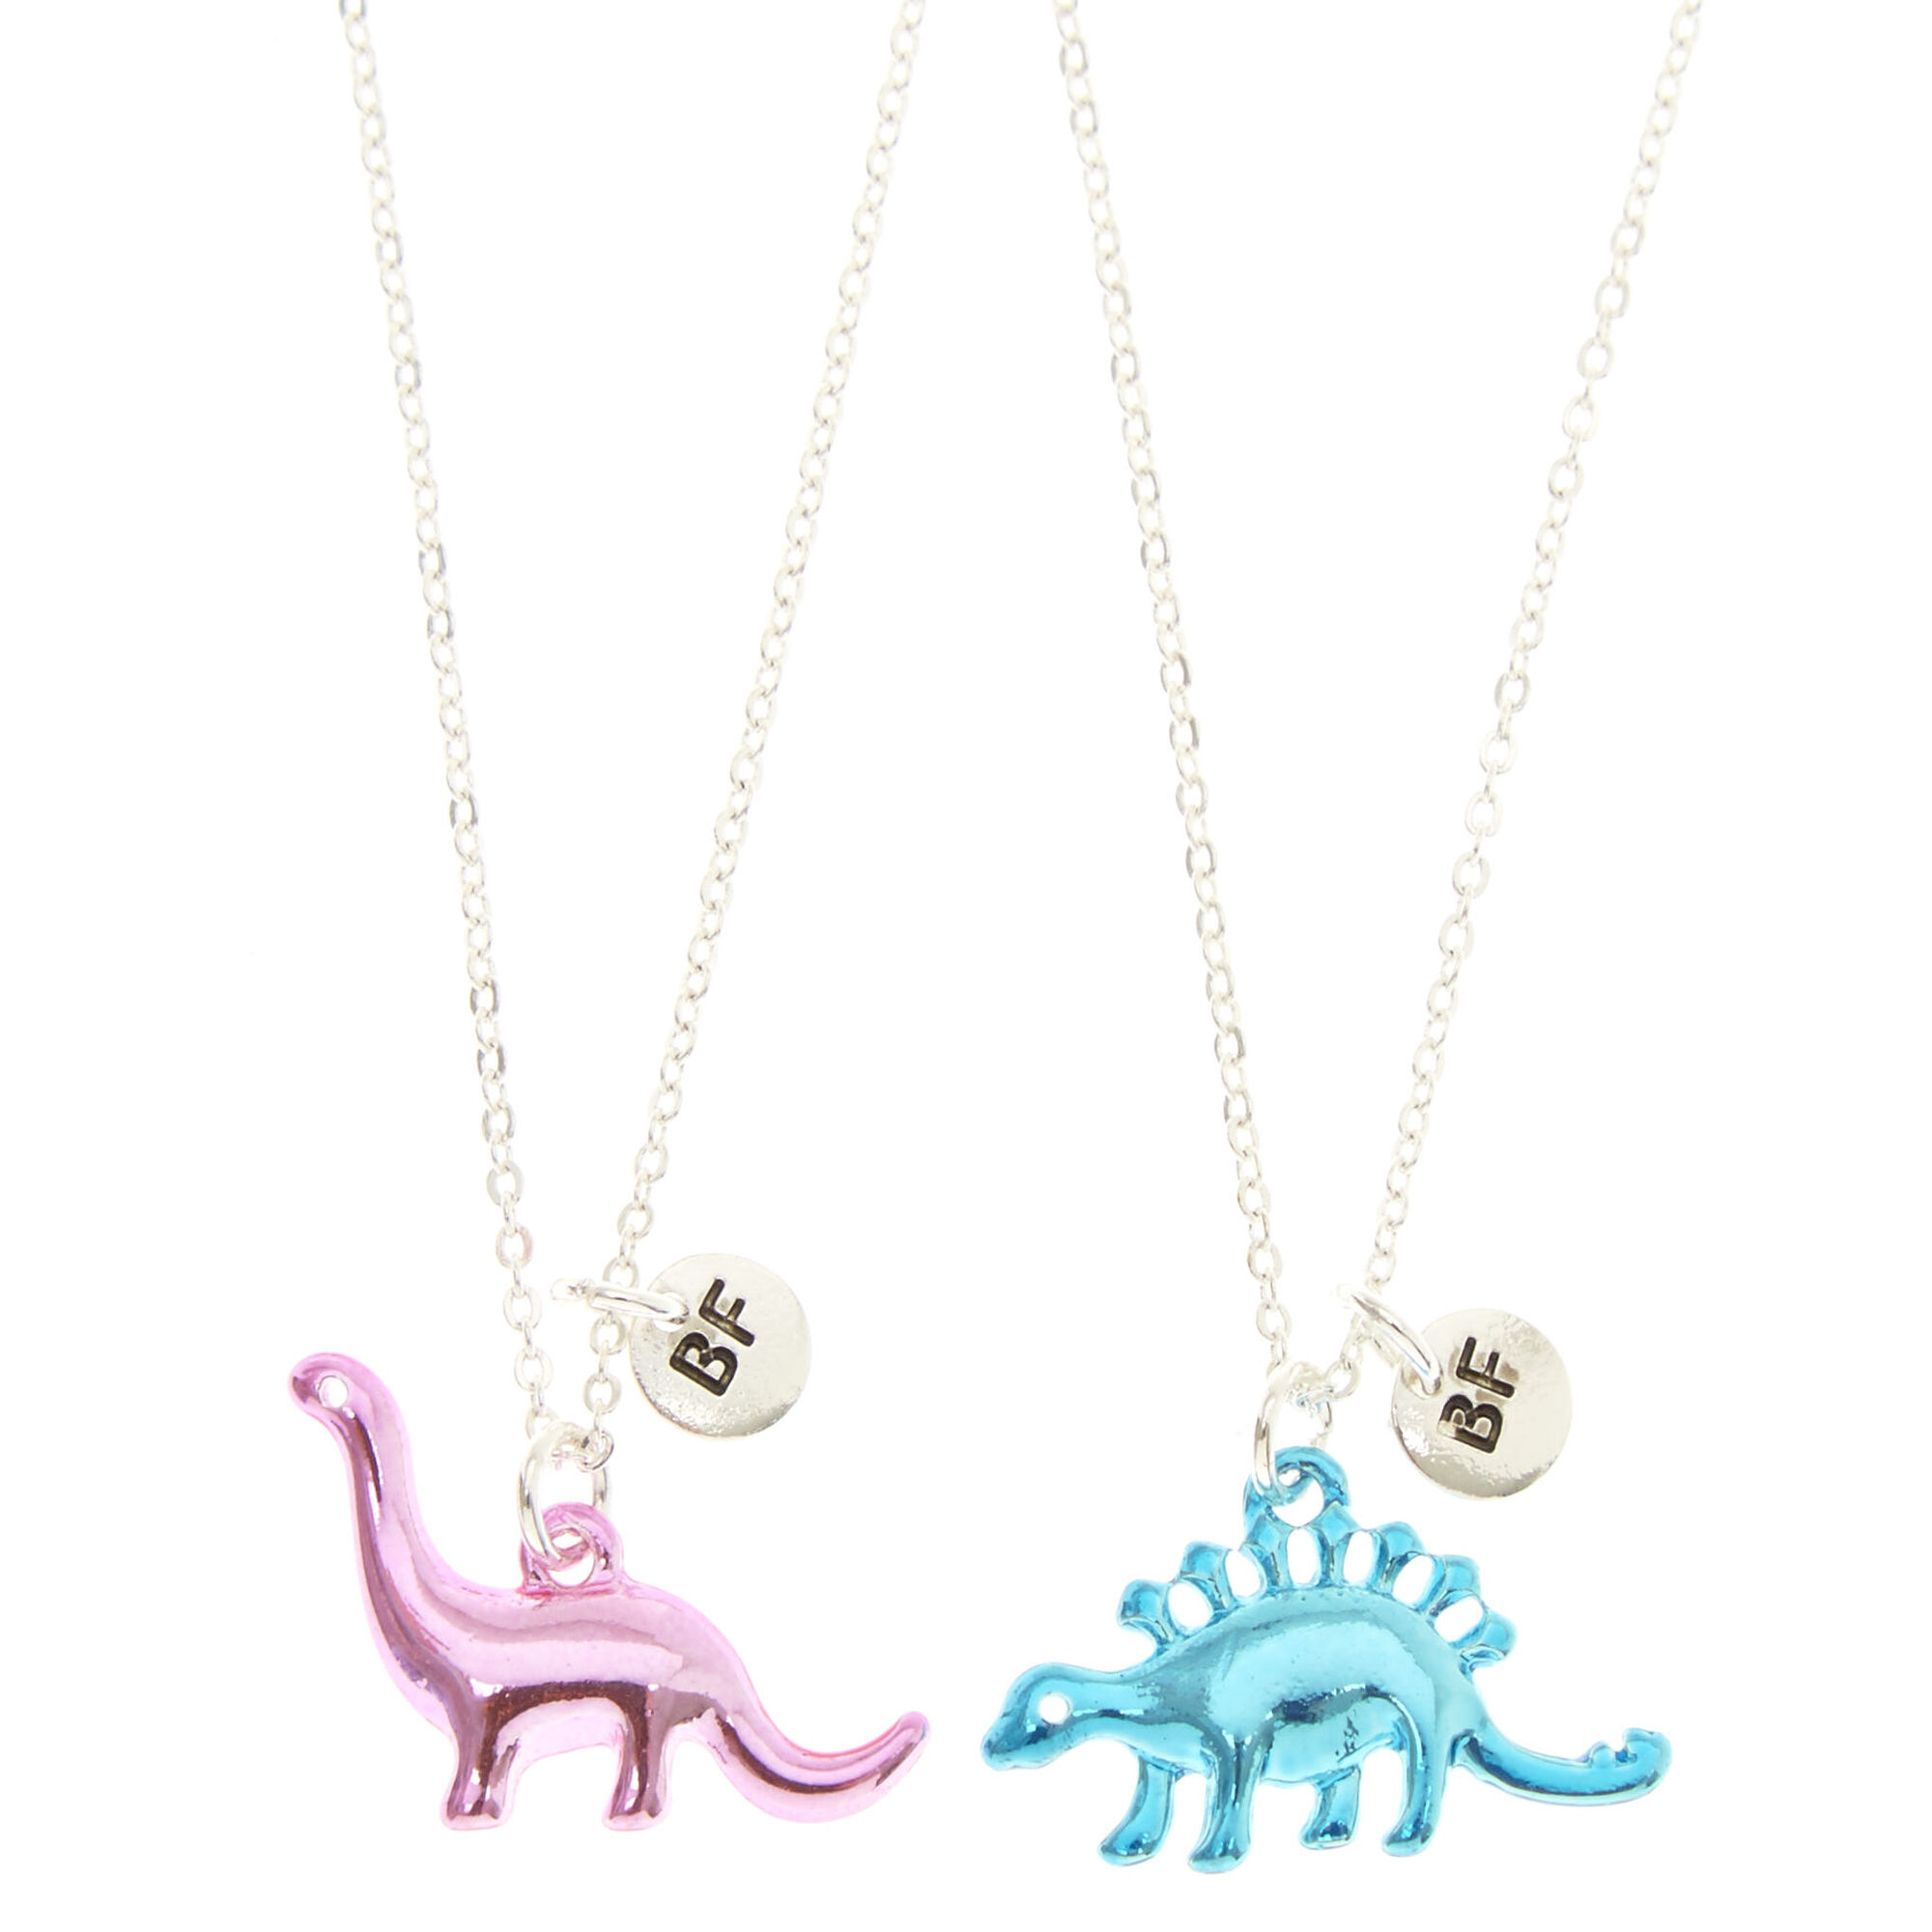 dinosaur boston rawr science shop gift museum charm necklace pendant of